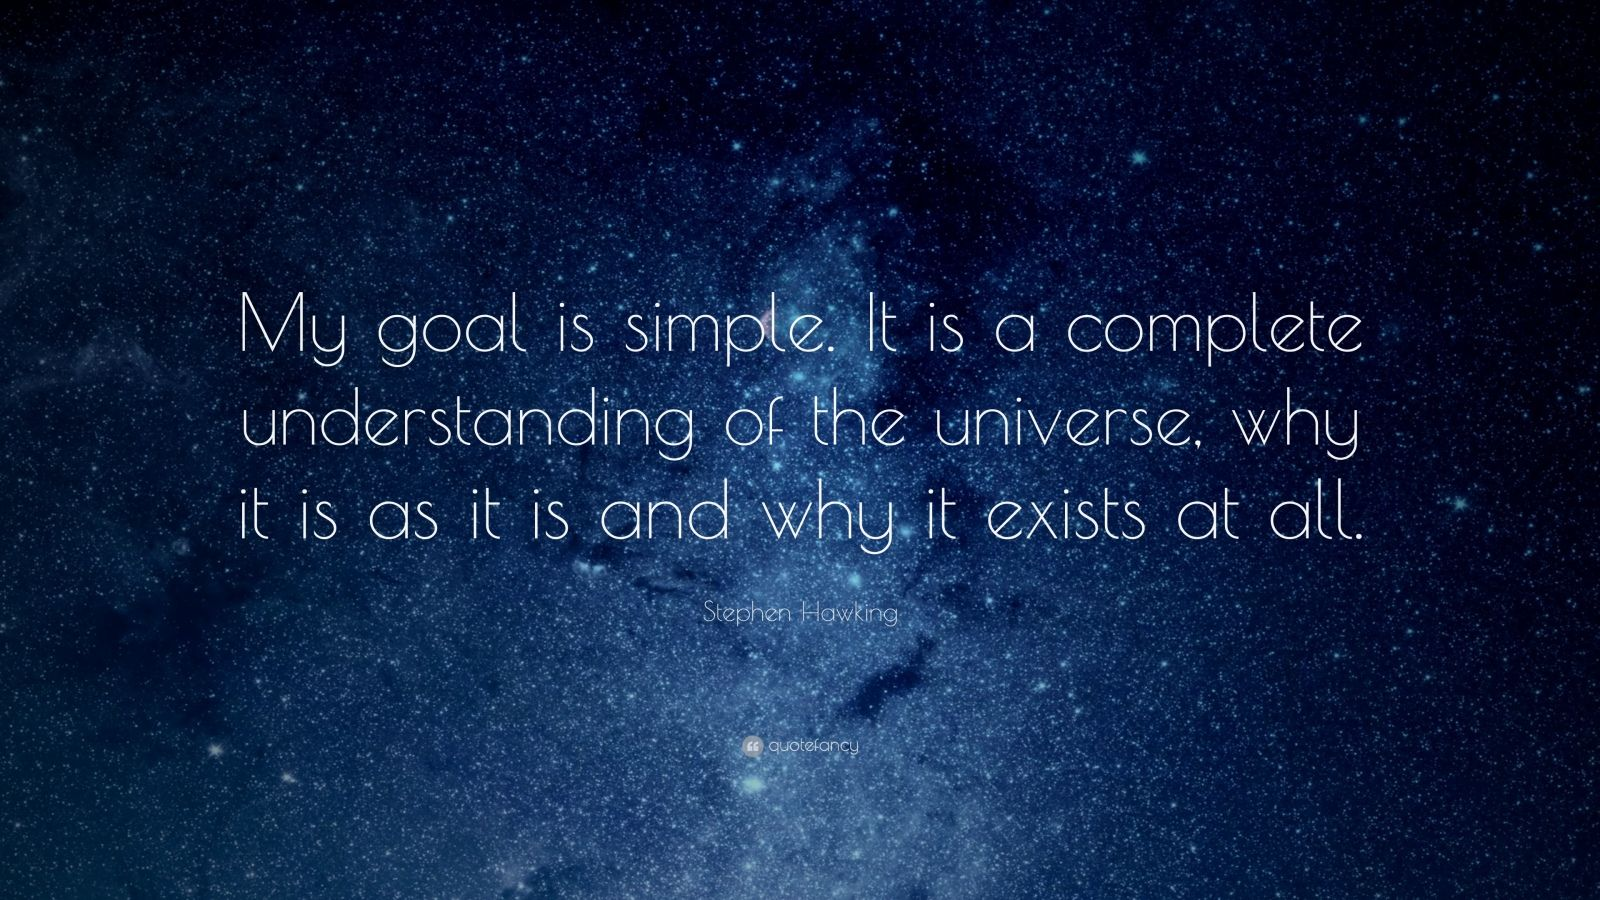 """Stephen Hawking Quote: """"My goal is simple. It is a complete understanding of the universe, why it is as it is and why it exists at all."""""""